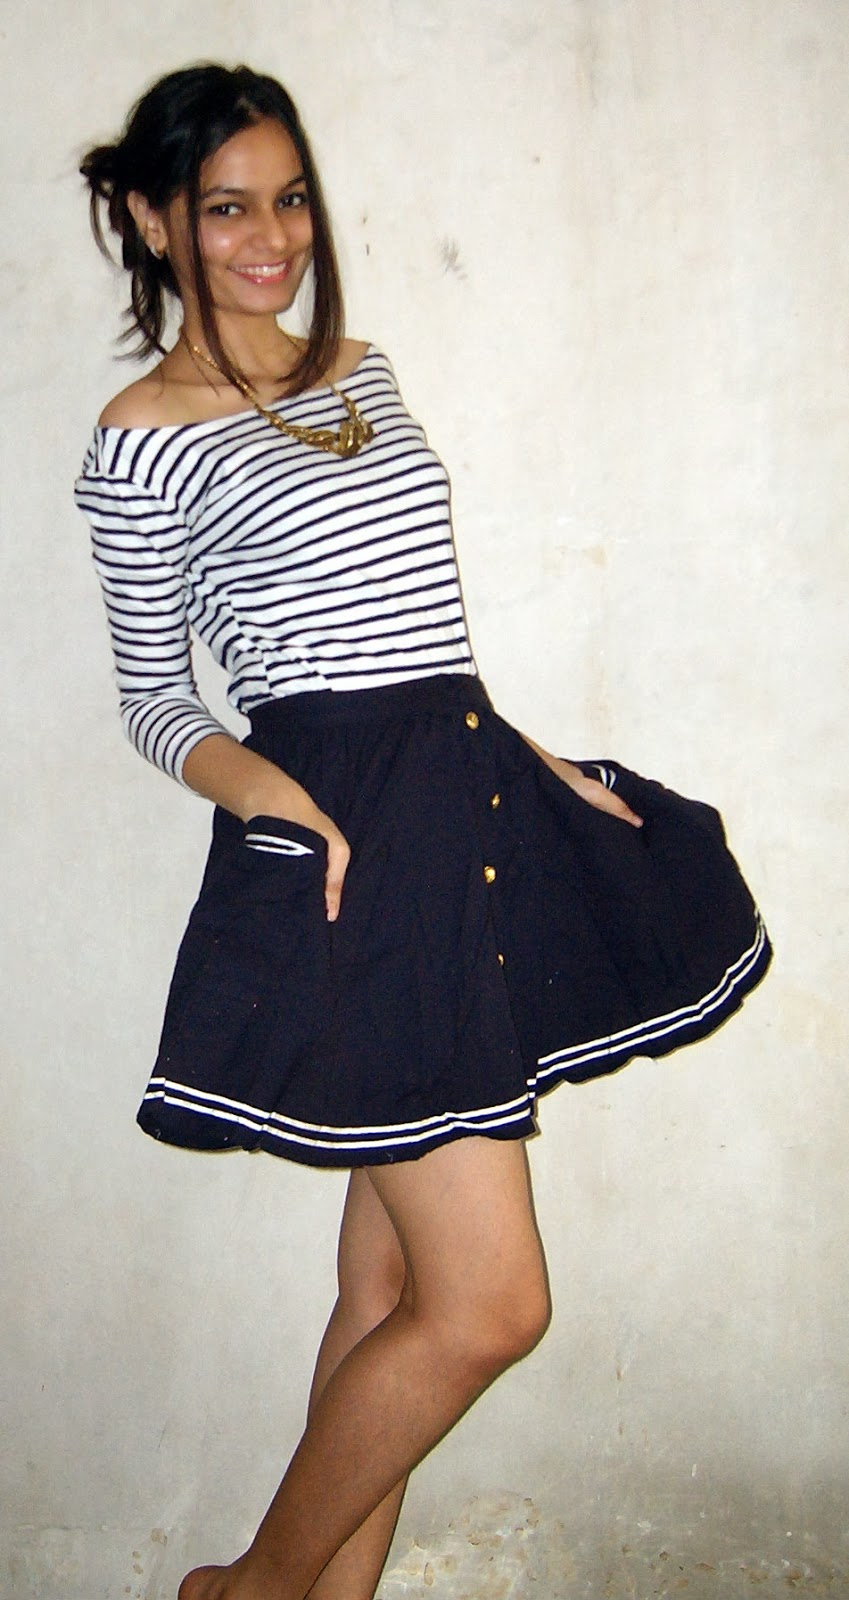 mumbai streetstyle, indian fashion blogger, skater skirt, how to wear striped tshirt, gold accents, statement necklace